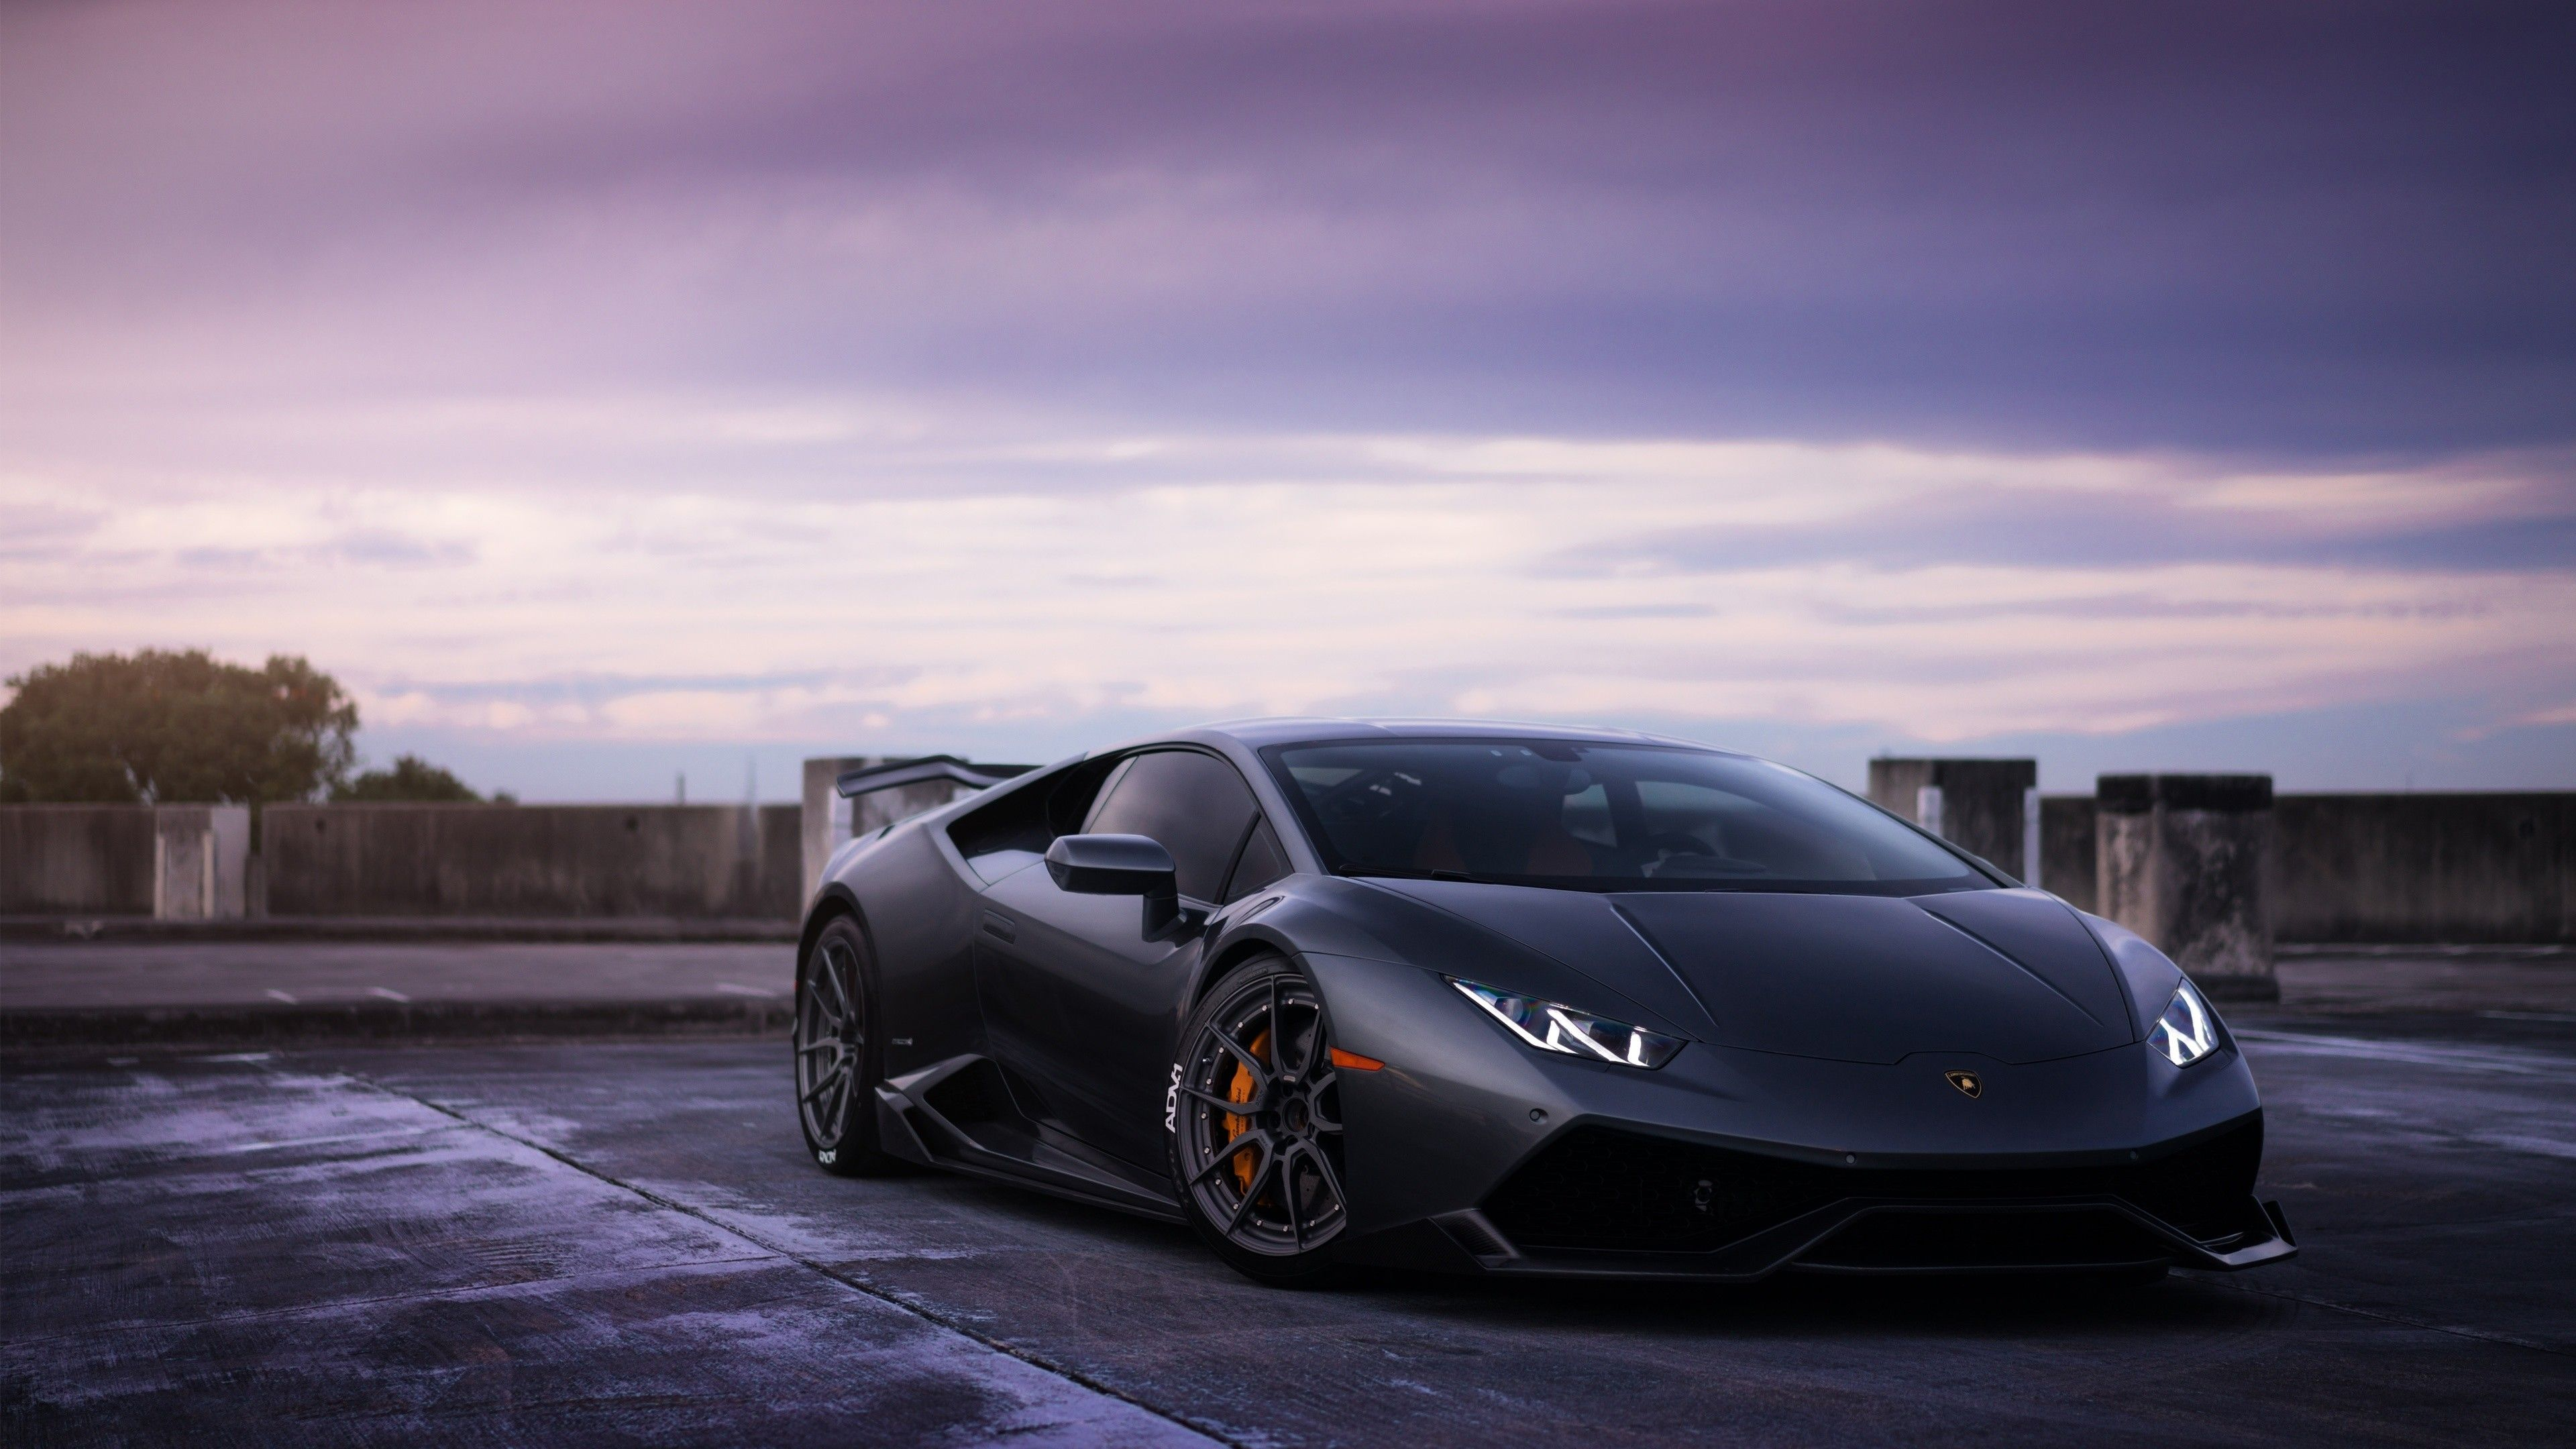 Black Lamborghini Huracan Wallpapers Top Free Black